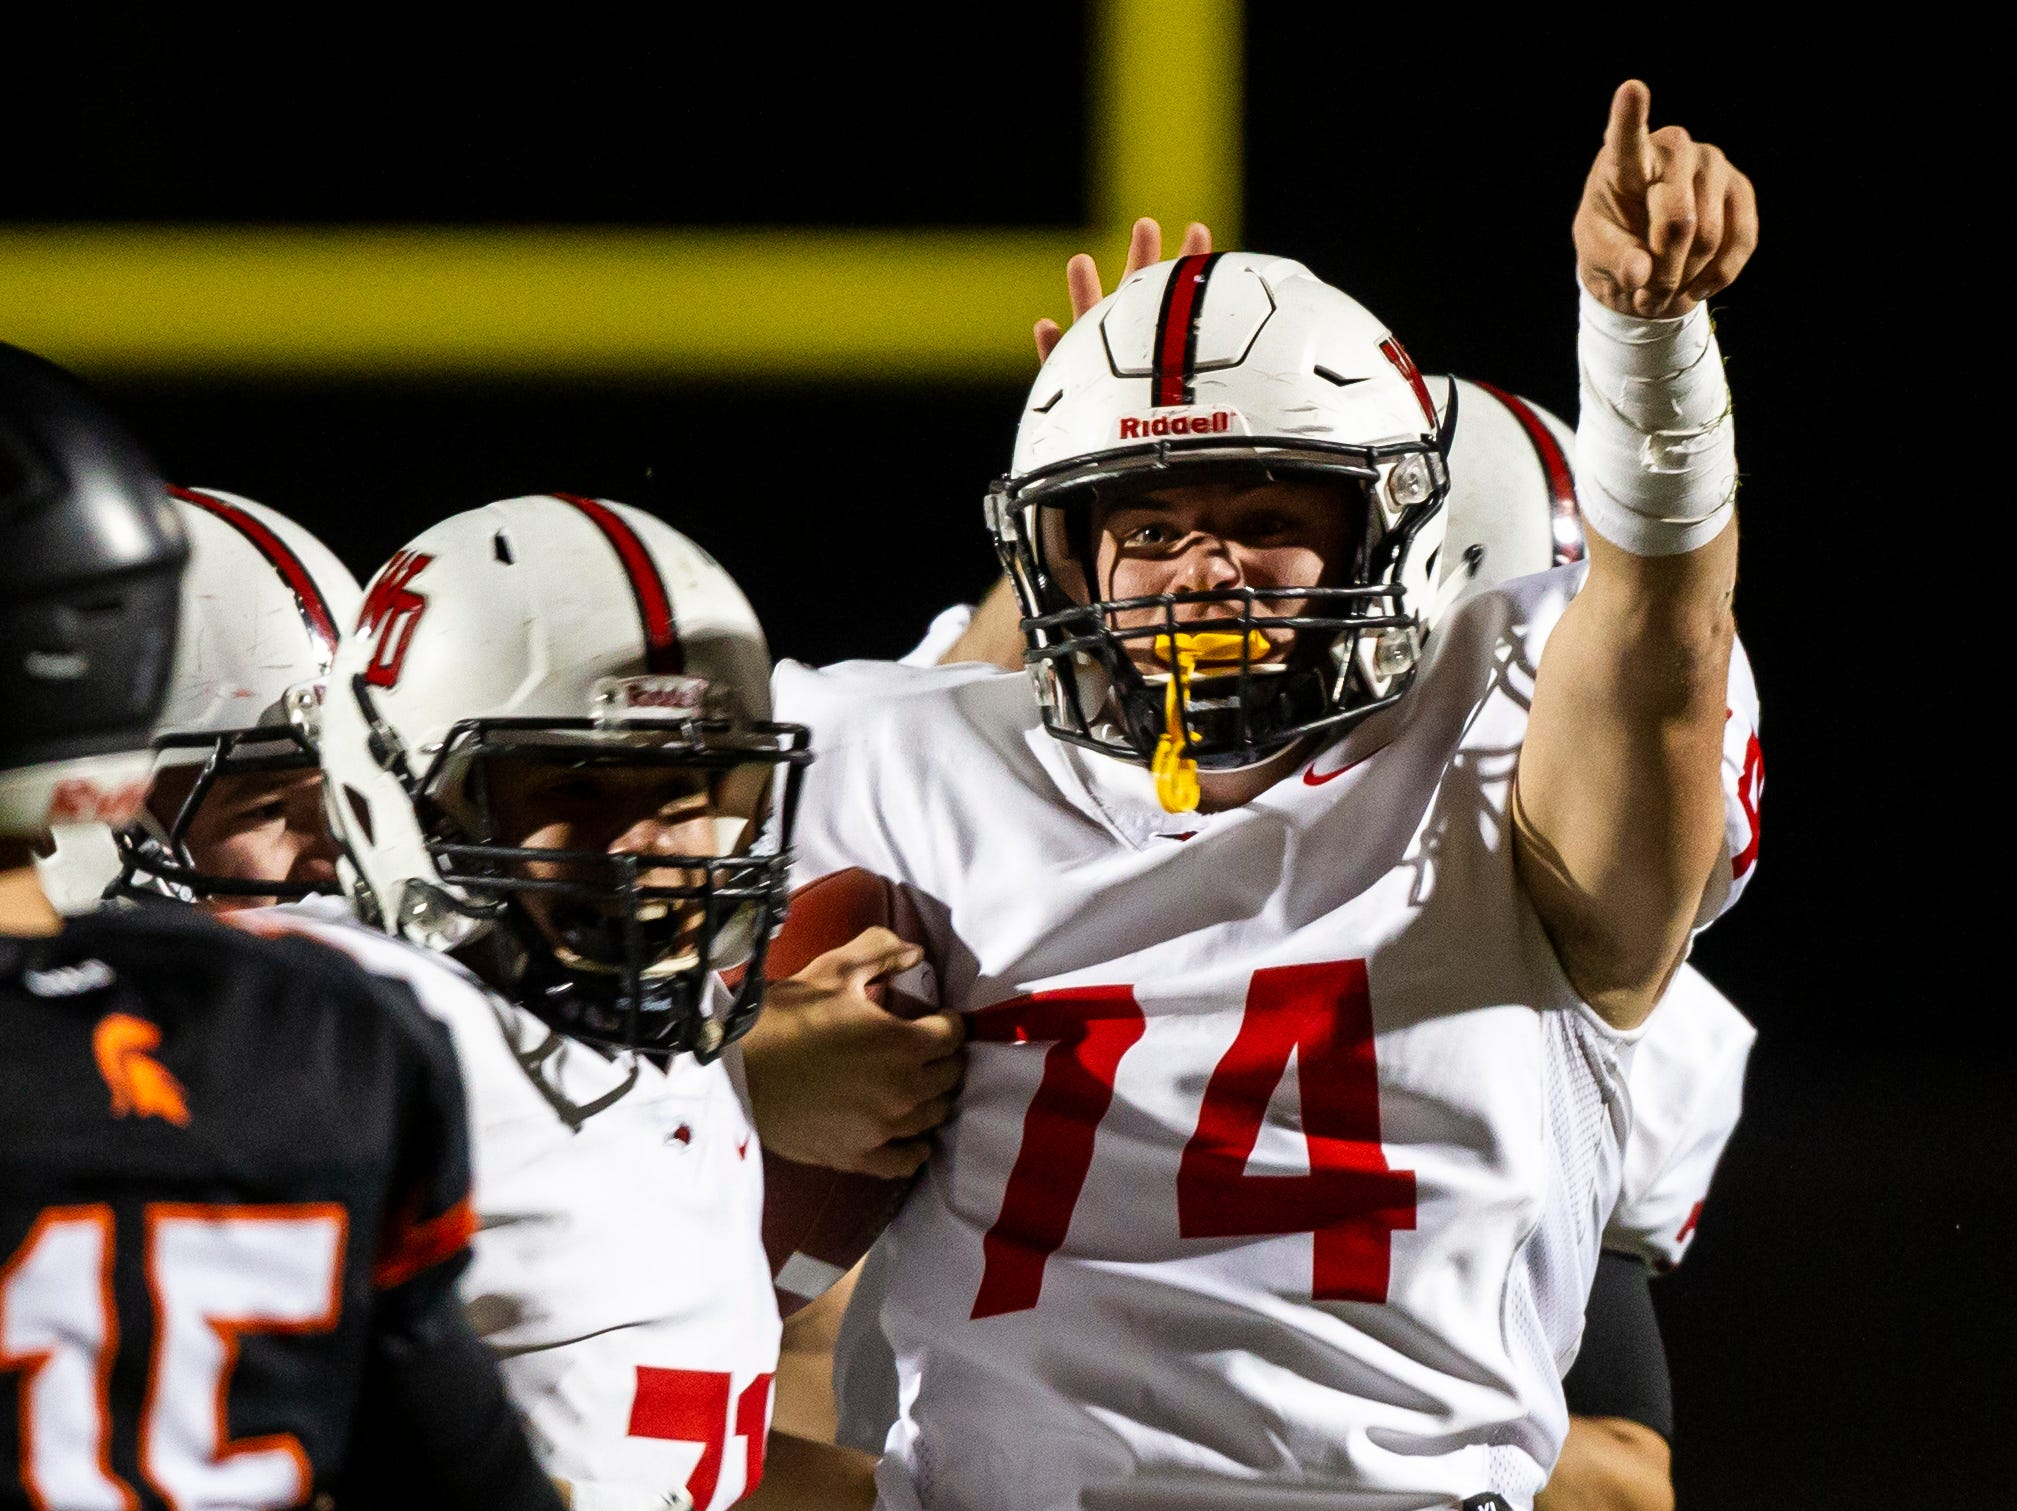 Western Dubuque's Justin Kluesner (74) celebrates after recovering a fumble during a Class 3A varsity first round playoff football game on Friday, Oct. 26, 2018, at Spartan Stadium in Solon, Iowa.